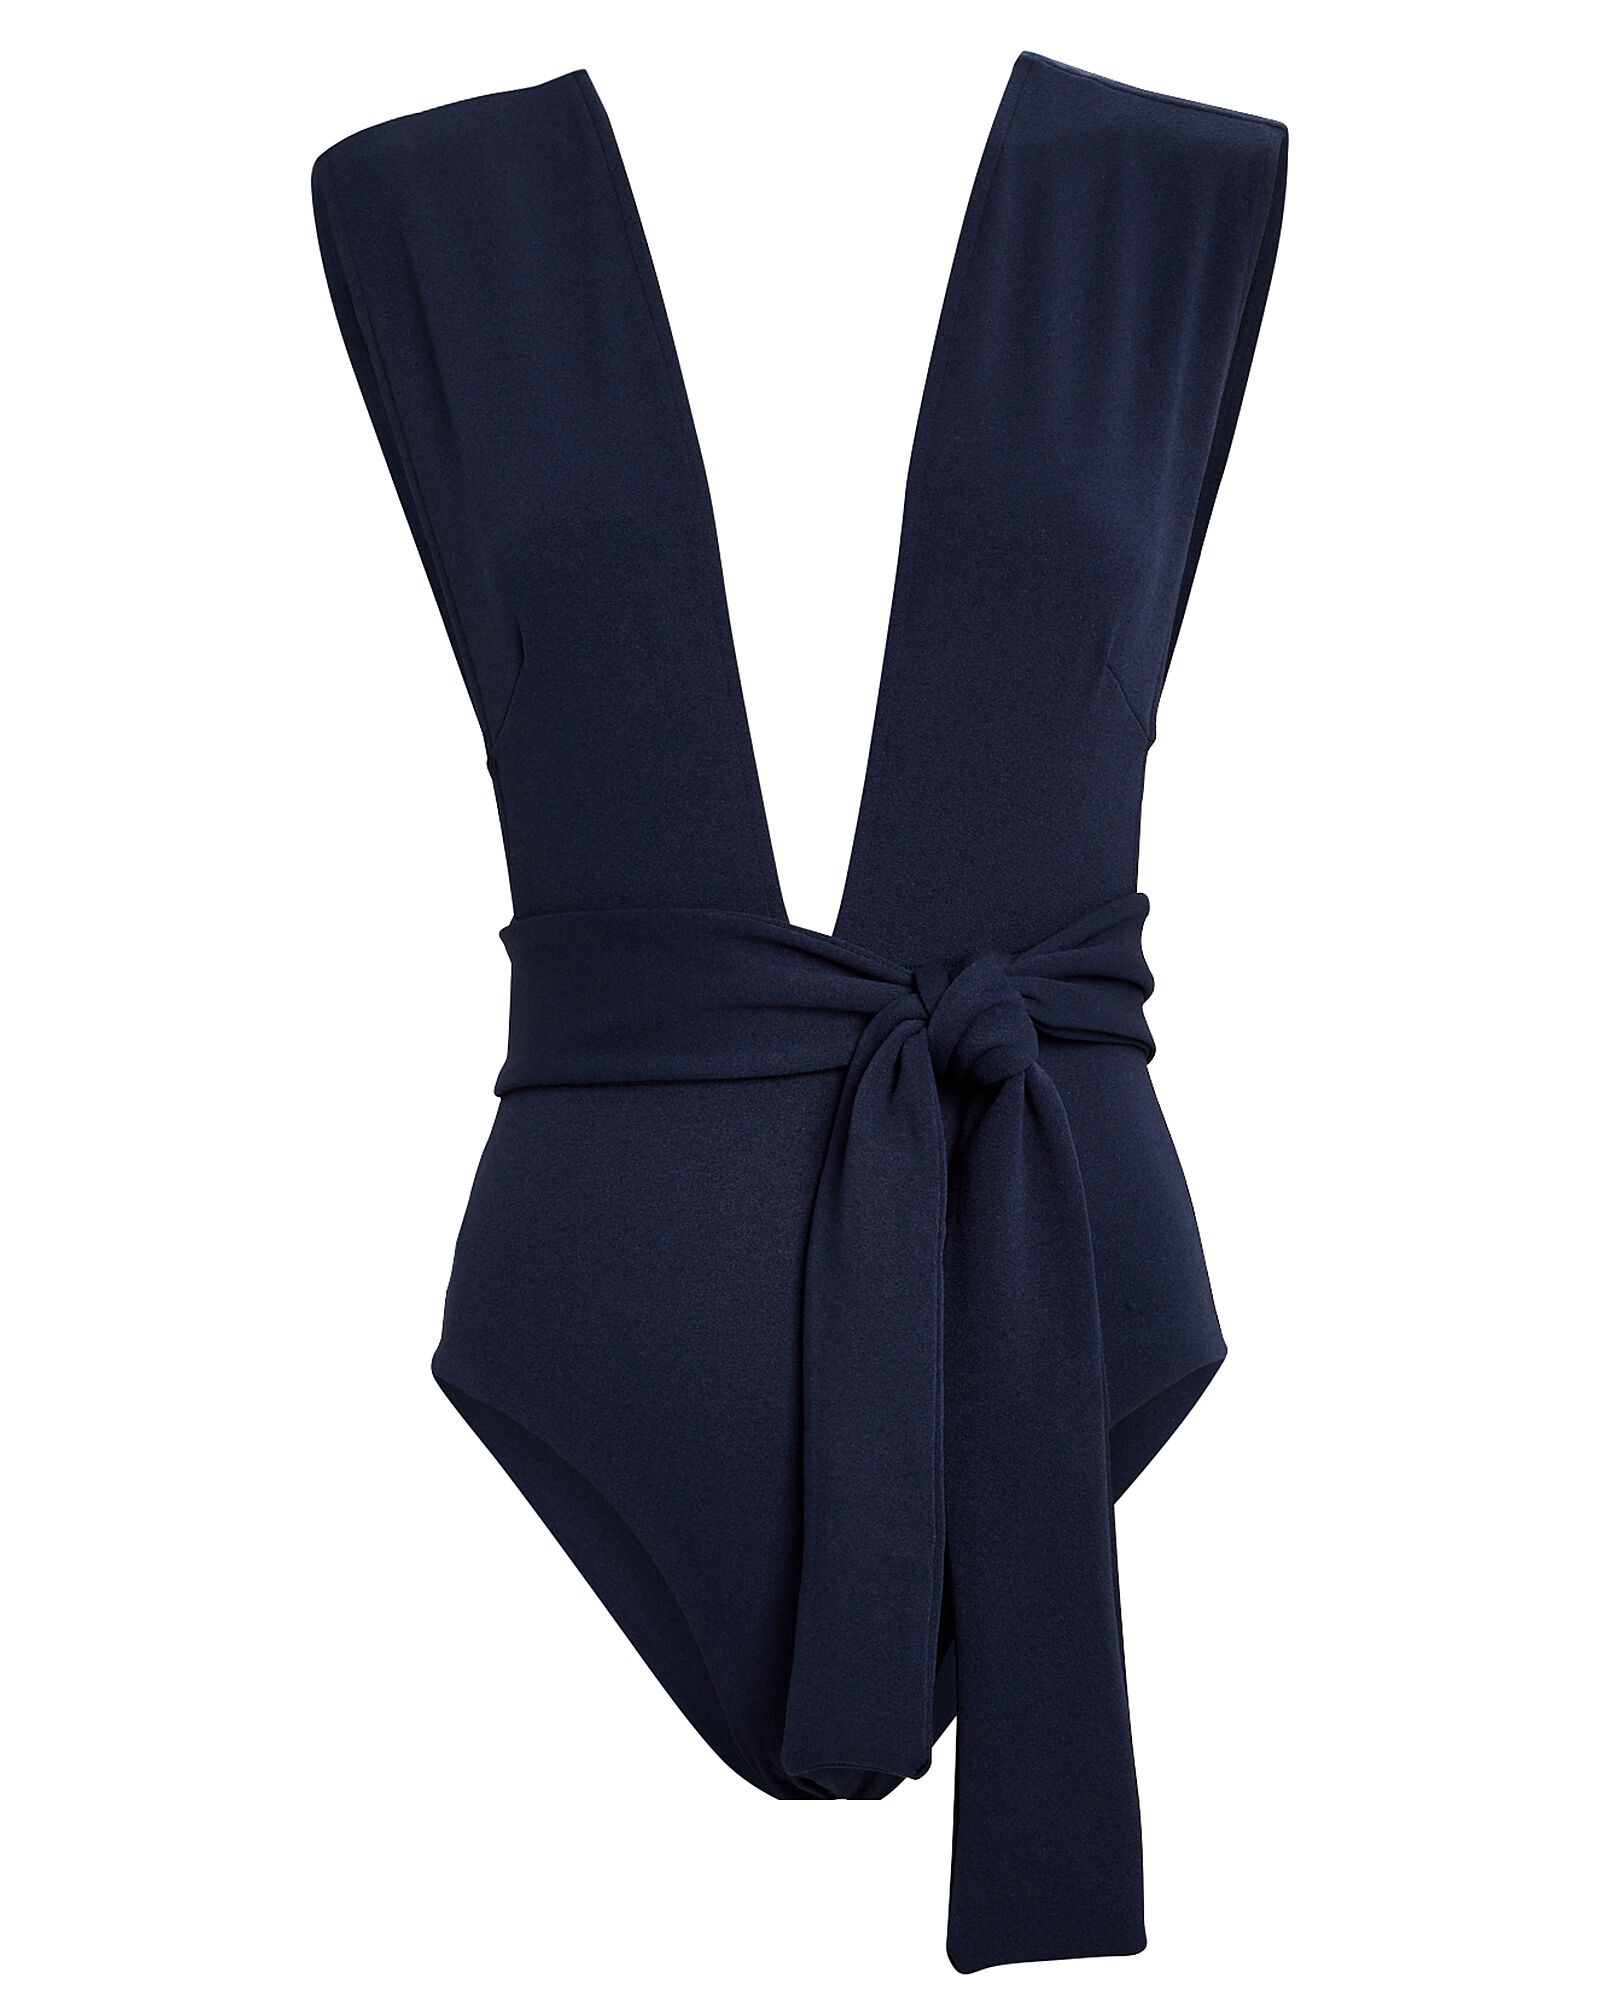 Crepe Maillot One-Piece Swimsuit, NAVY, hi-res